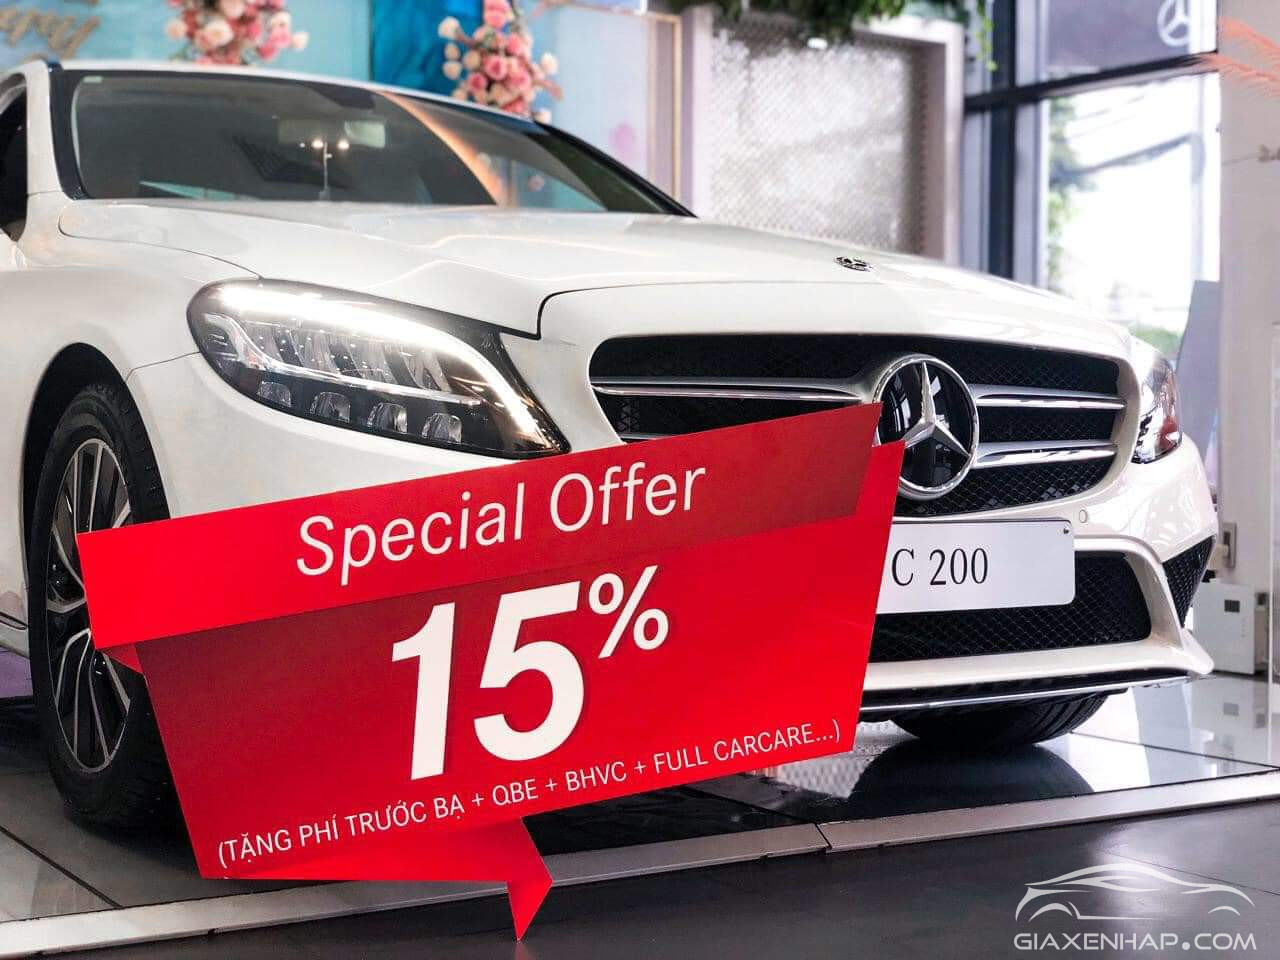 Mercedes-benz-offer-15-giaxenhap